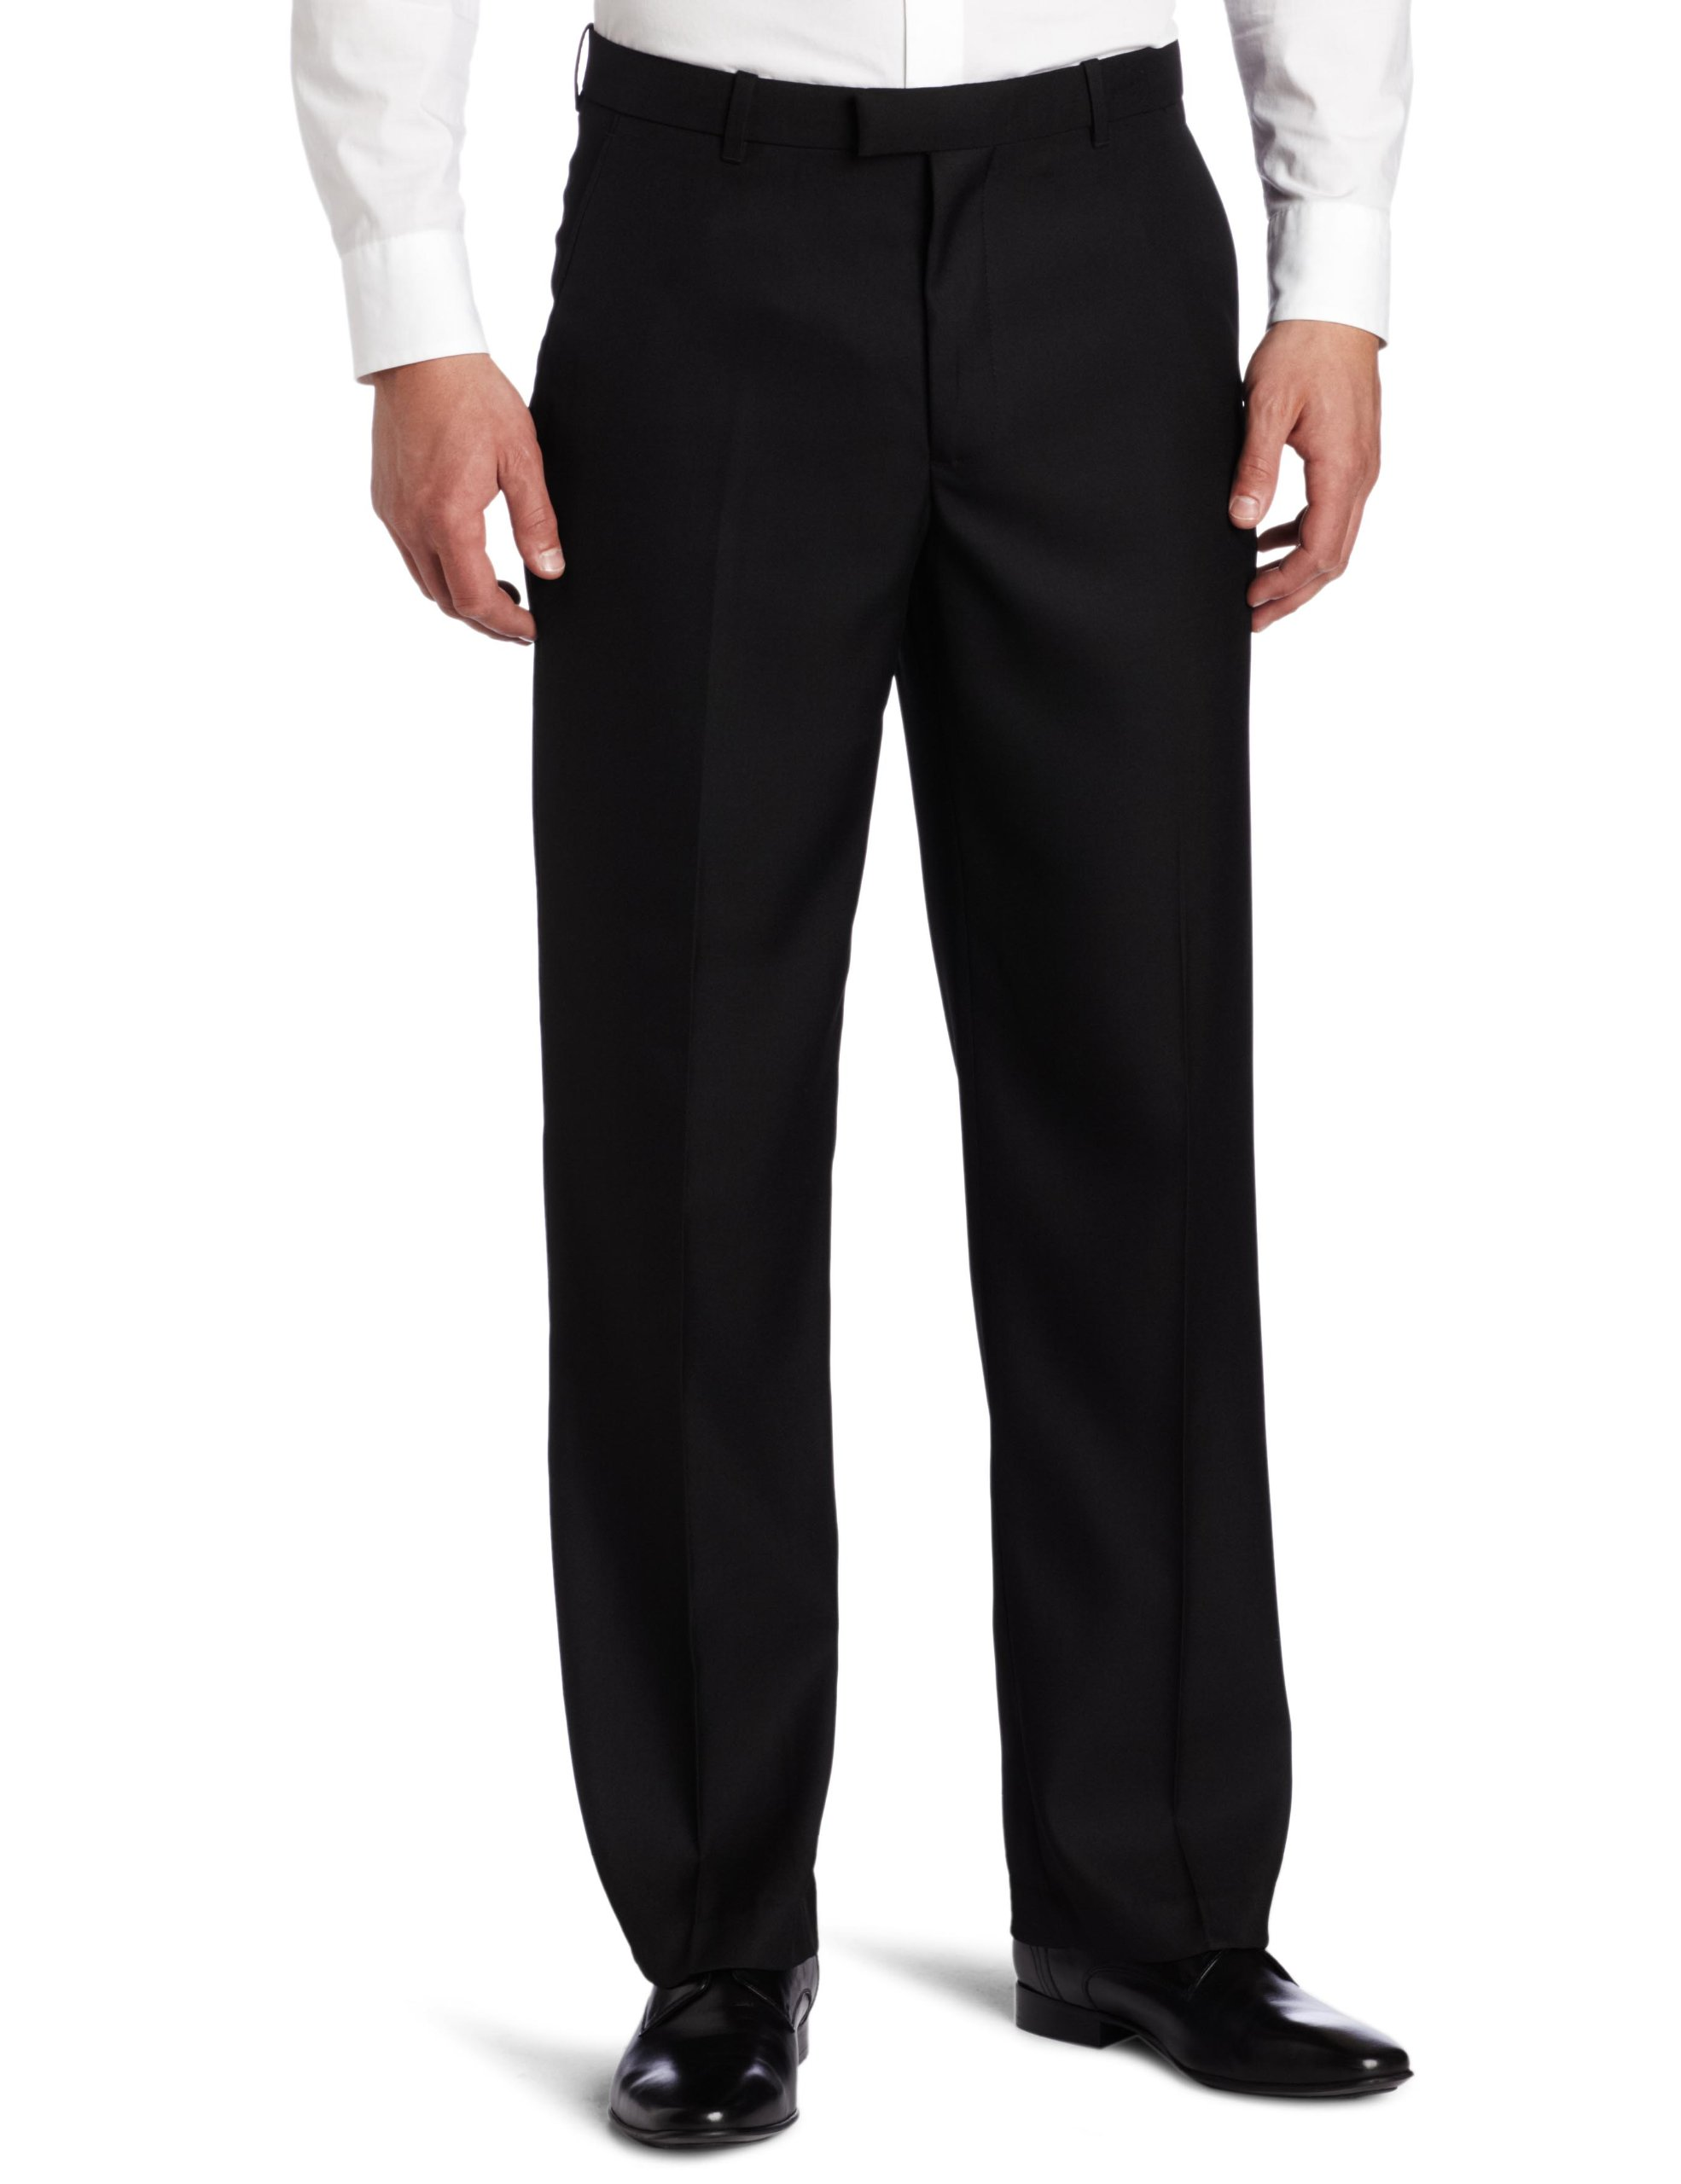 Perry Ellis Men's Portfolio Classic Fit Flat Front Folio Flex Waistband Sharkskin Pant, Black Ice, 42x32